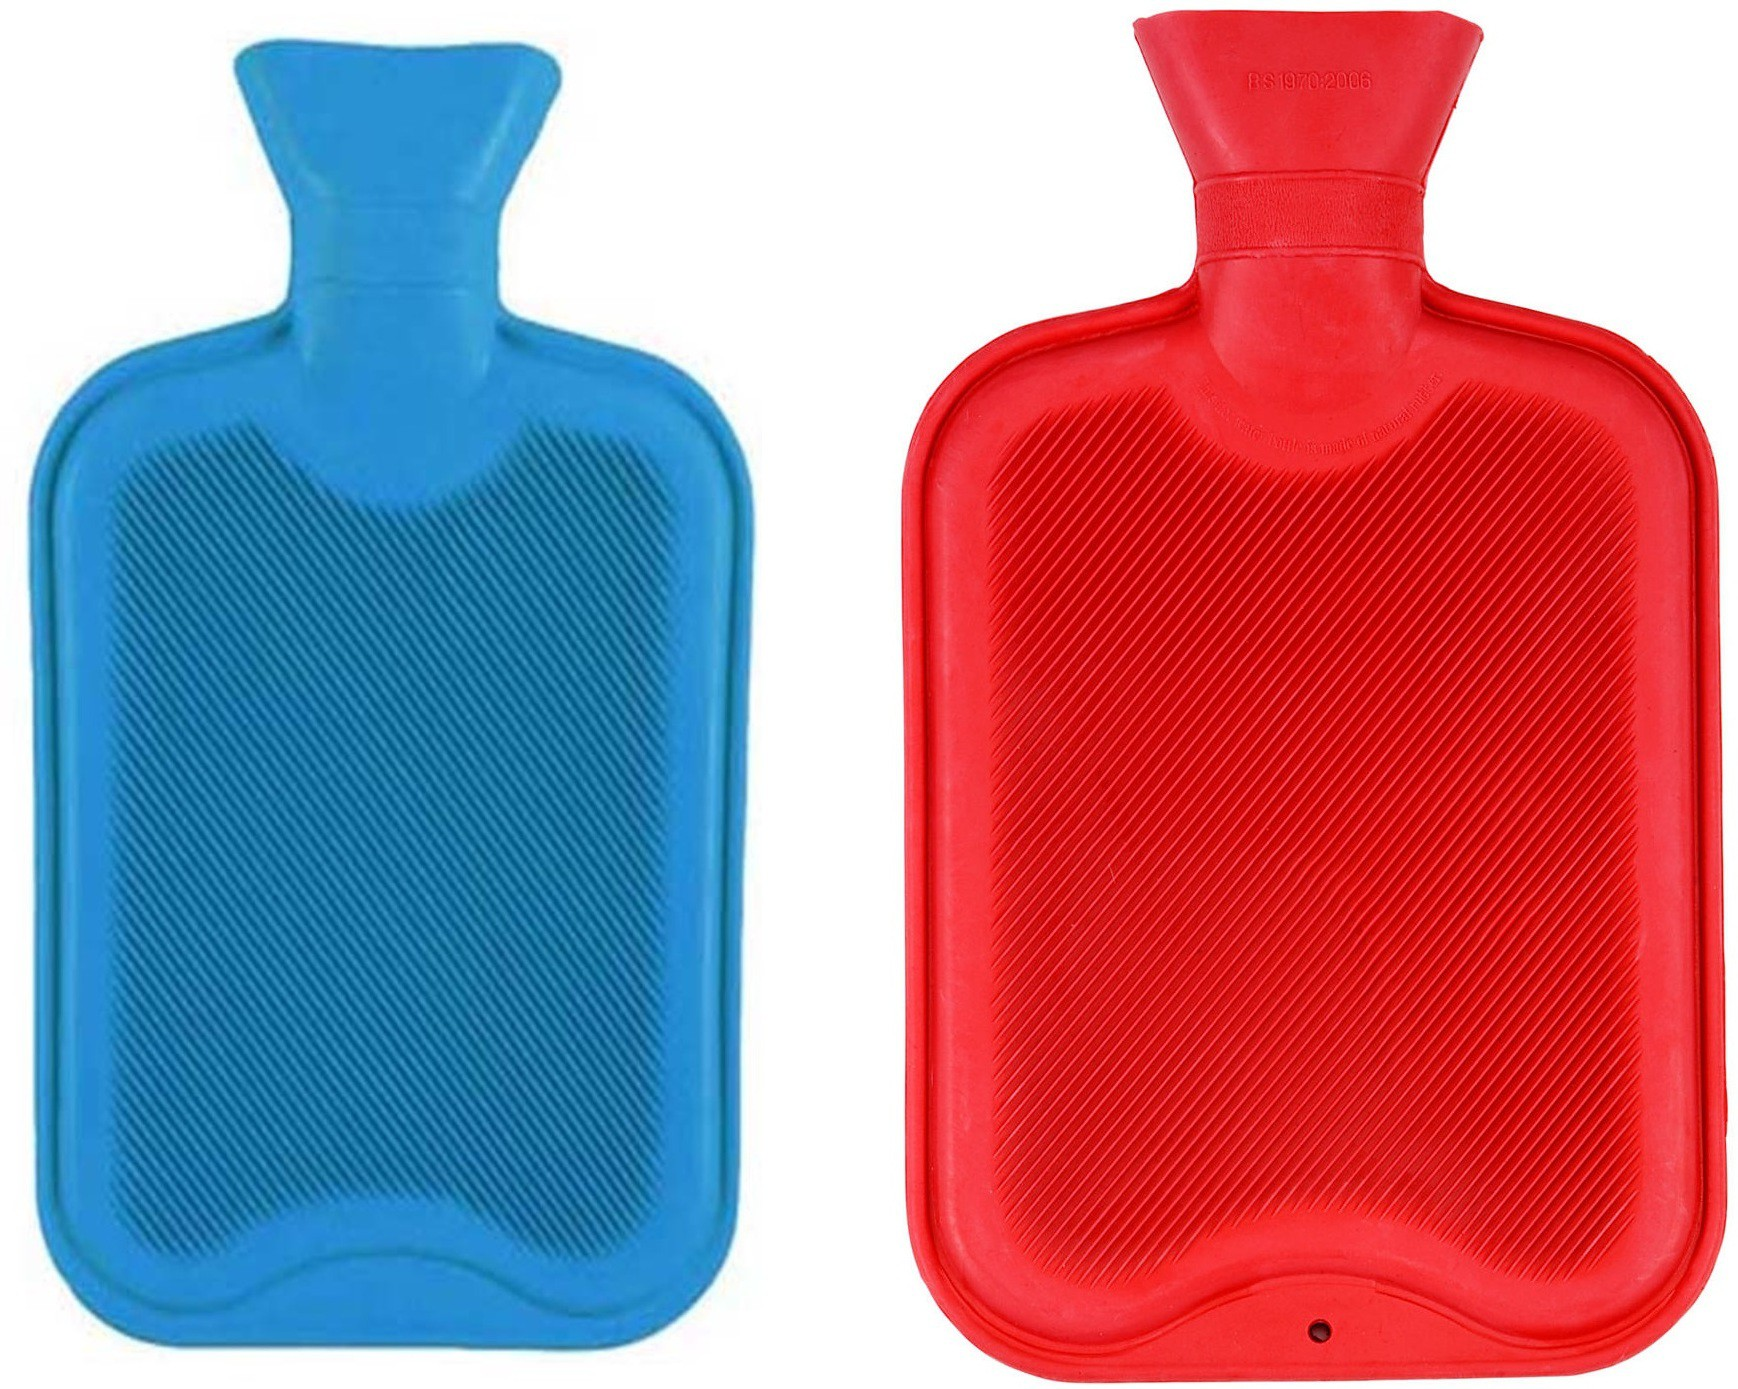 Bruzone Super Deluxe Combos Non-electrical 3 L Hot Water Bag(Red, Blue)